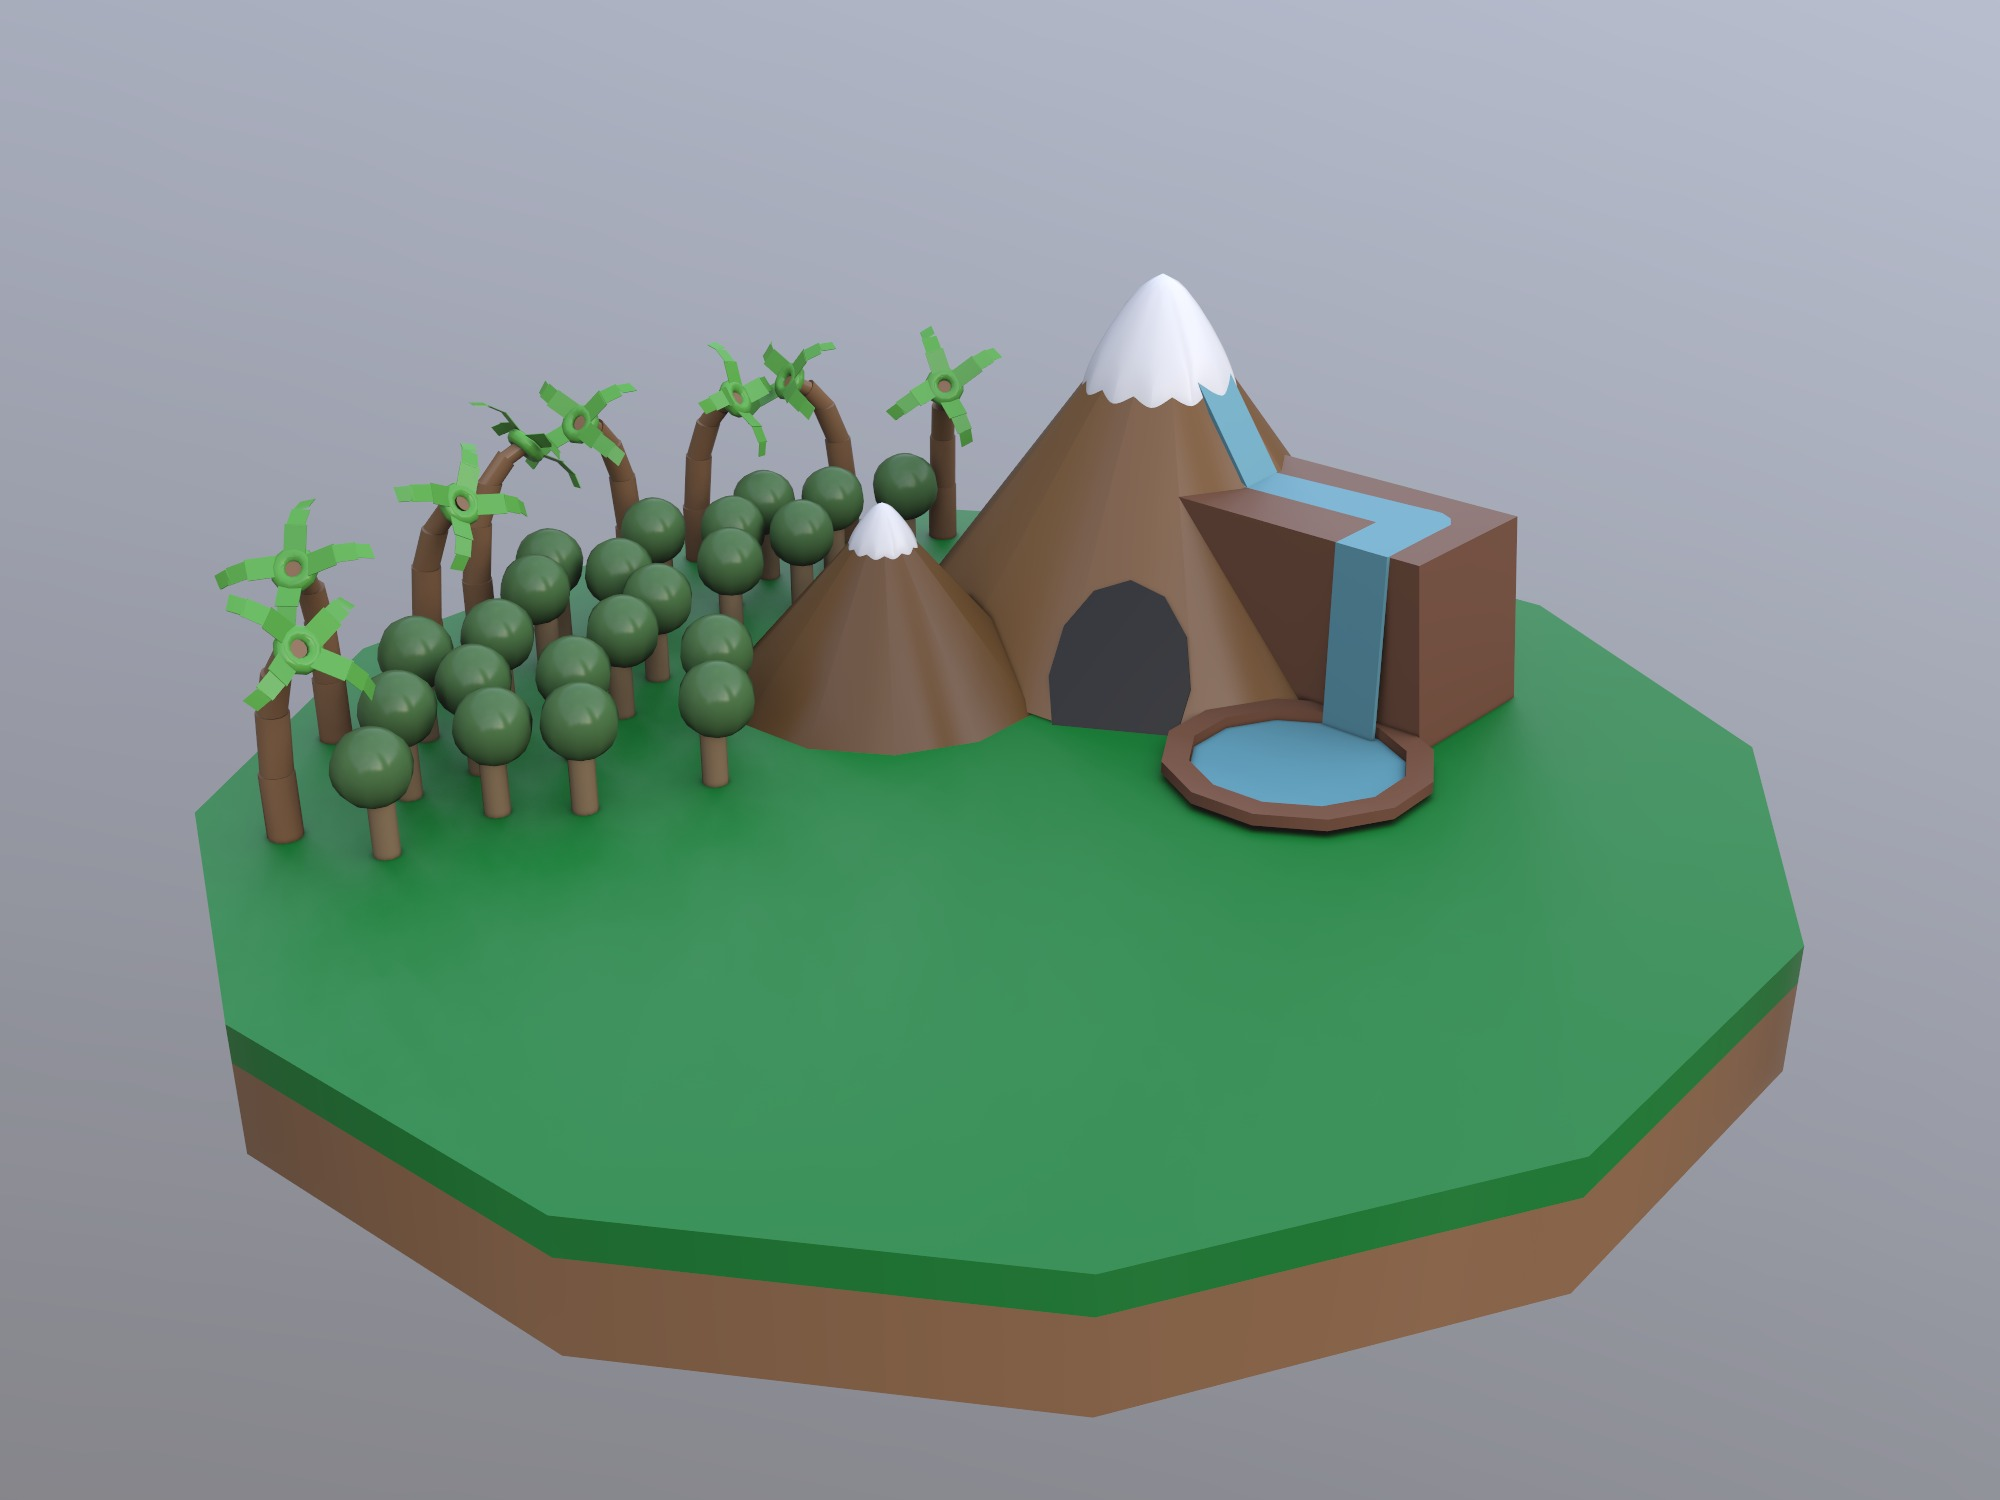 My Island (copy) - 3D design by 86s.rmoore on Jan 17, 2019